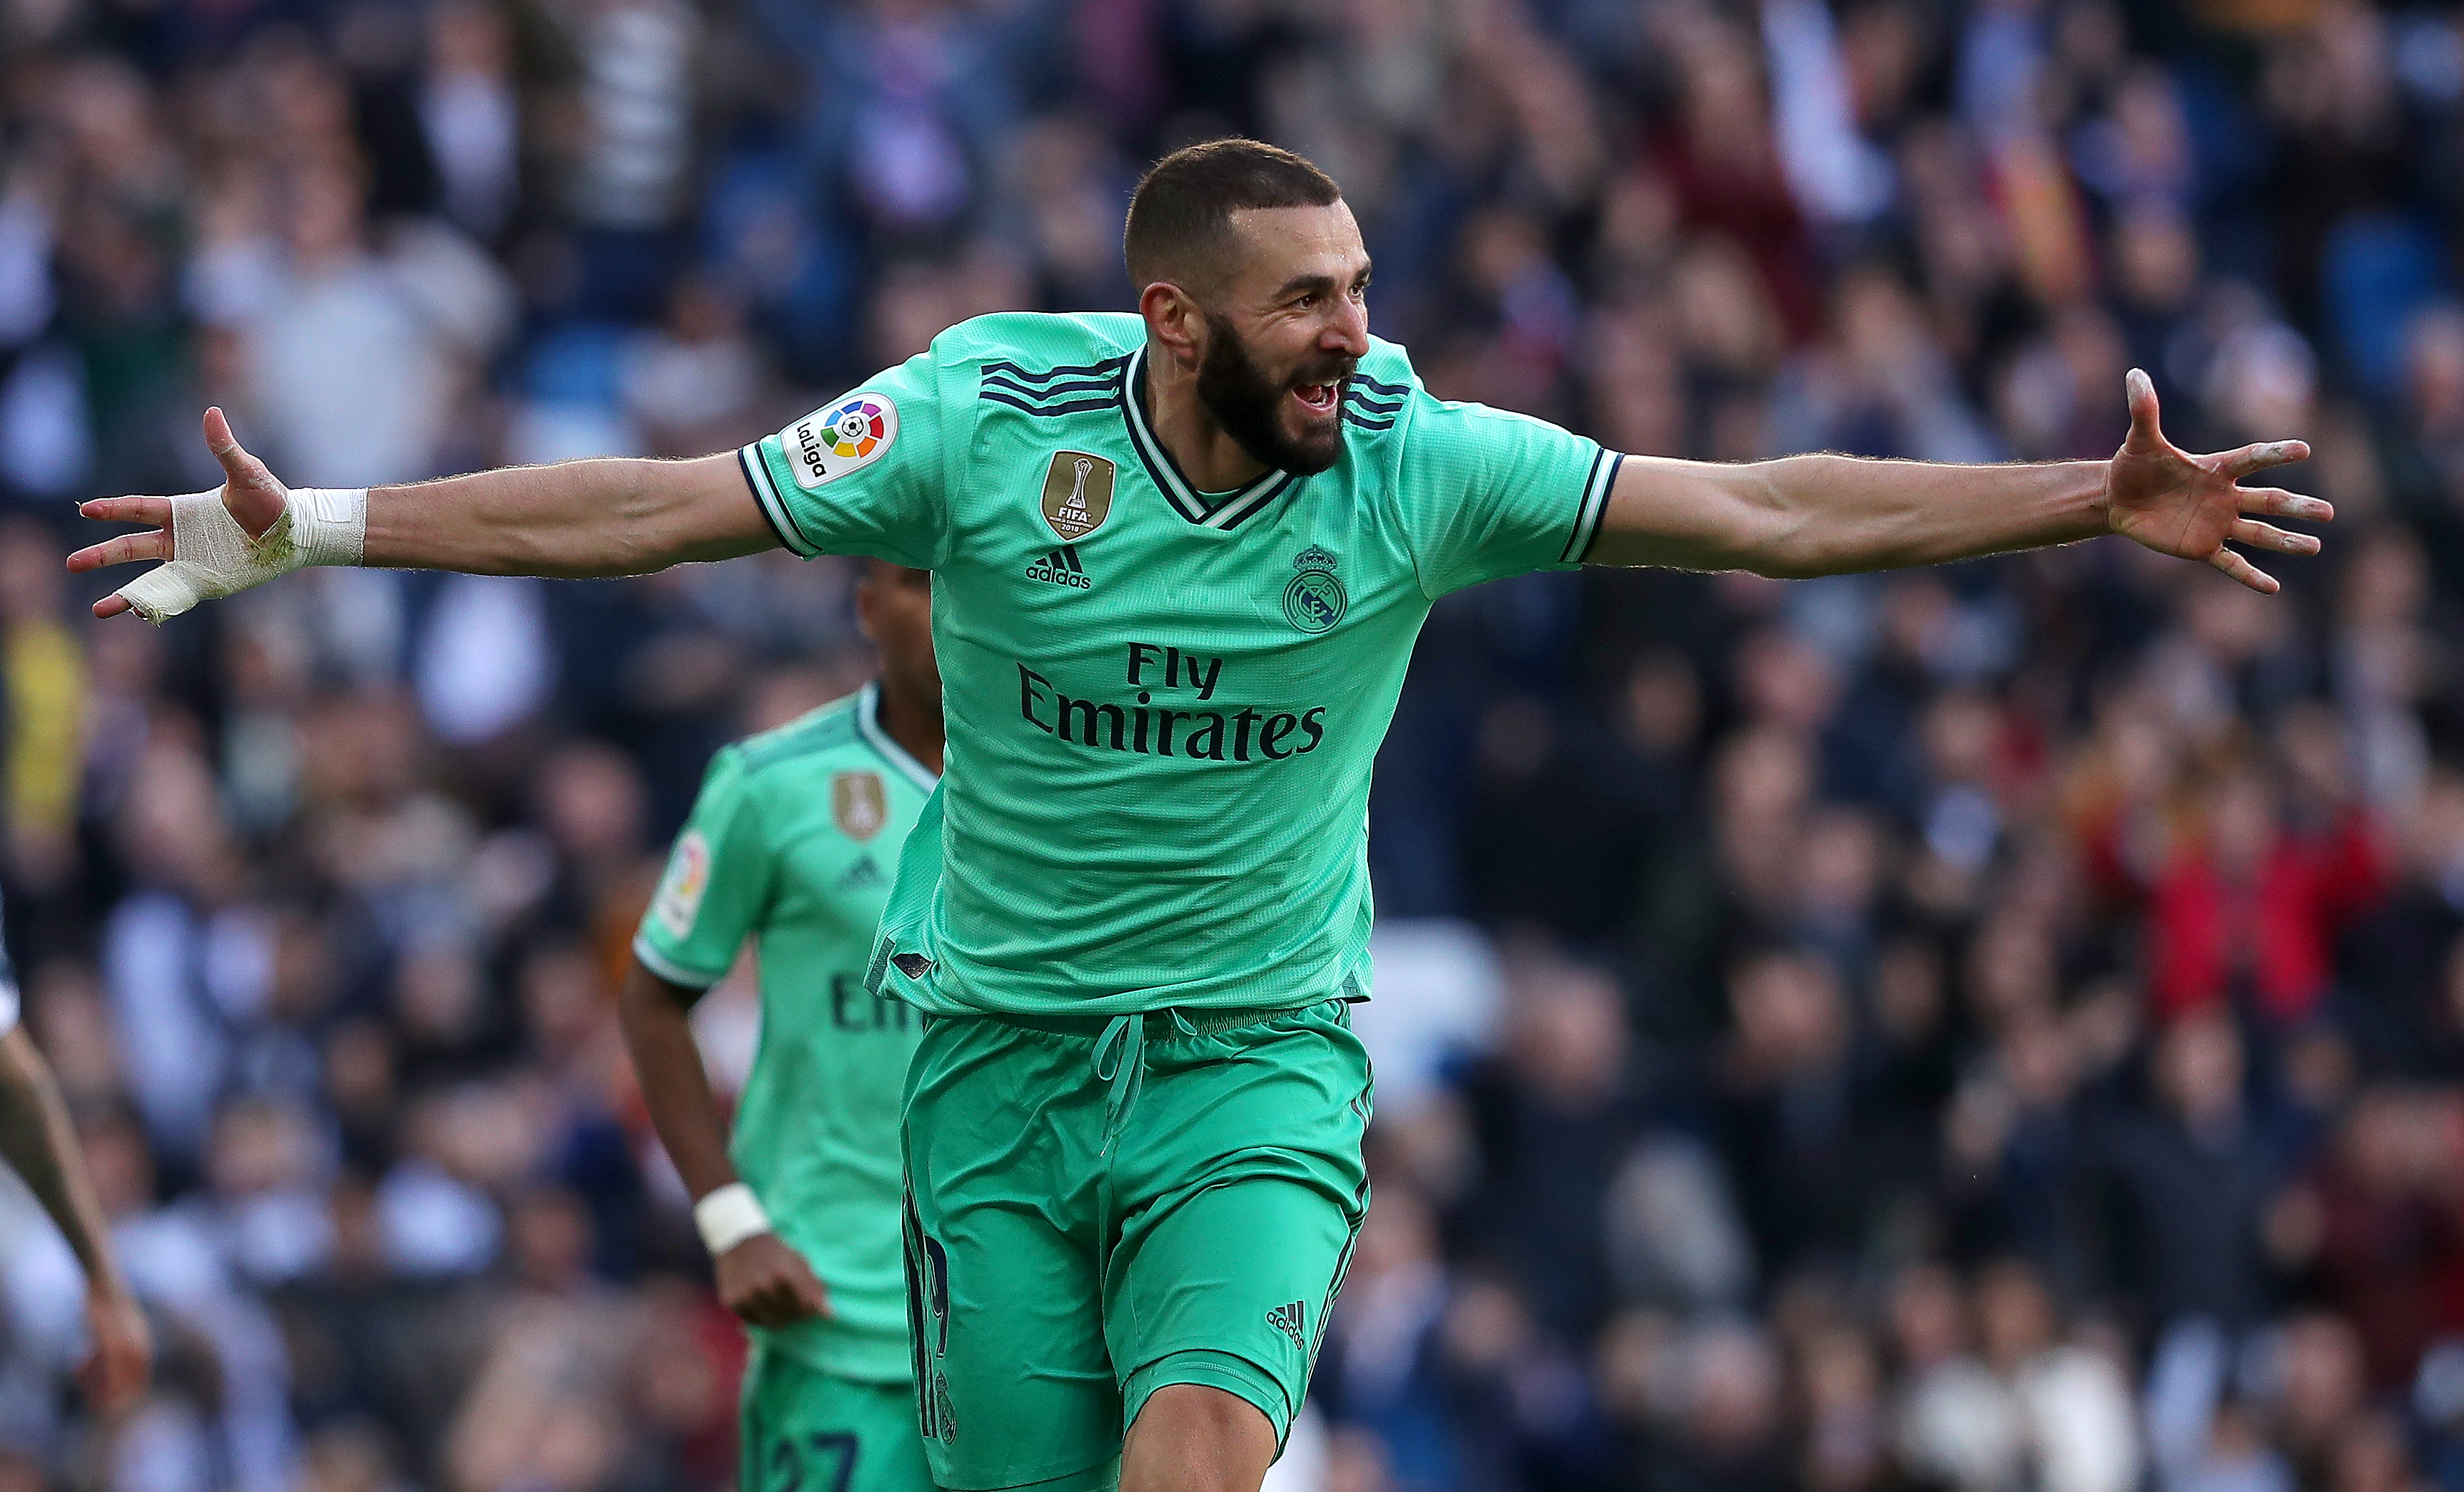 Real Madrid will look towards Karim Benzema for inspiration once again. (Photo by Gonzalo Arroyo Moreno/Getty Images)